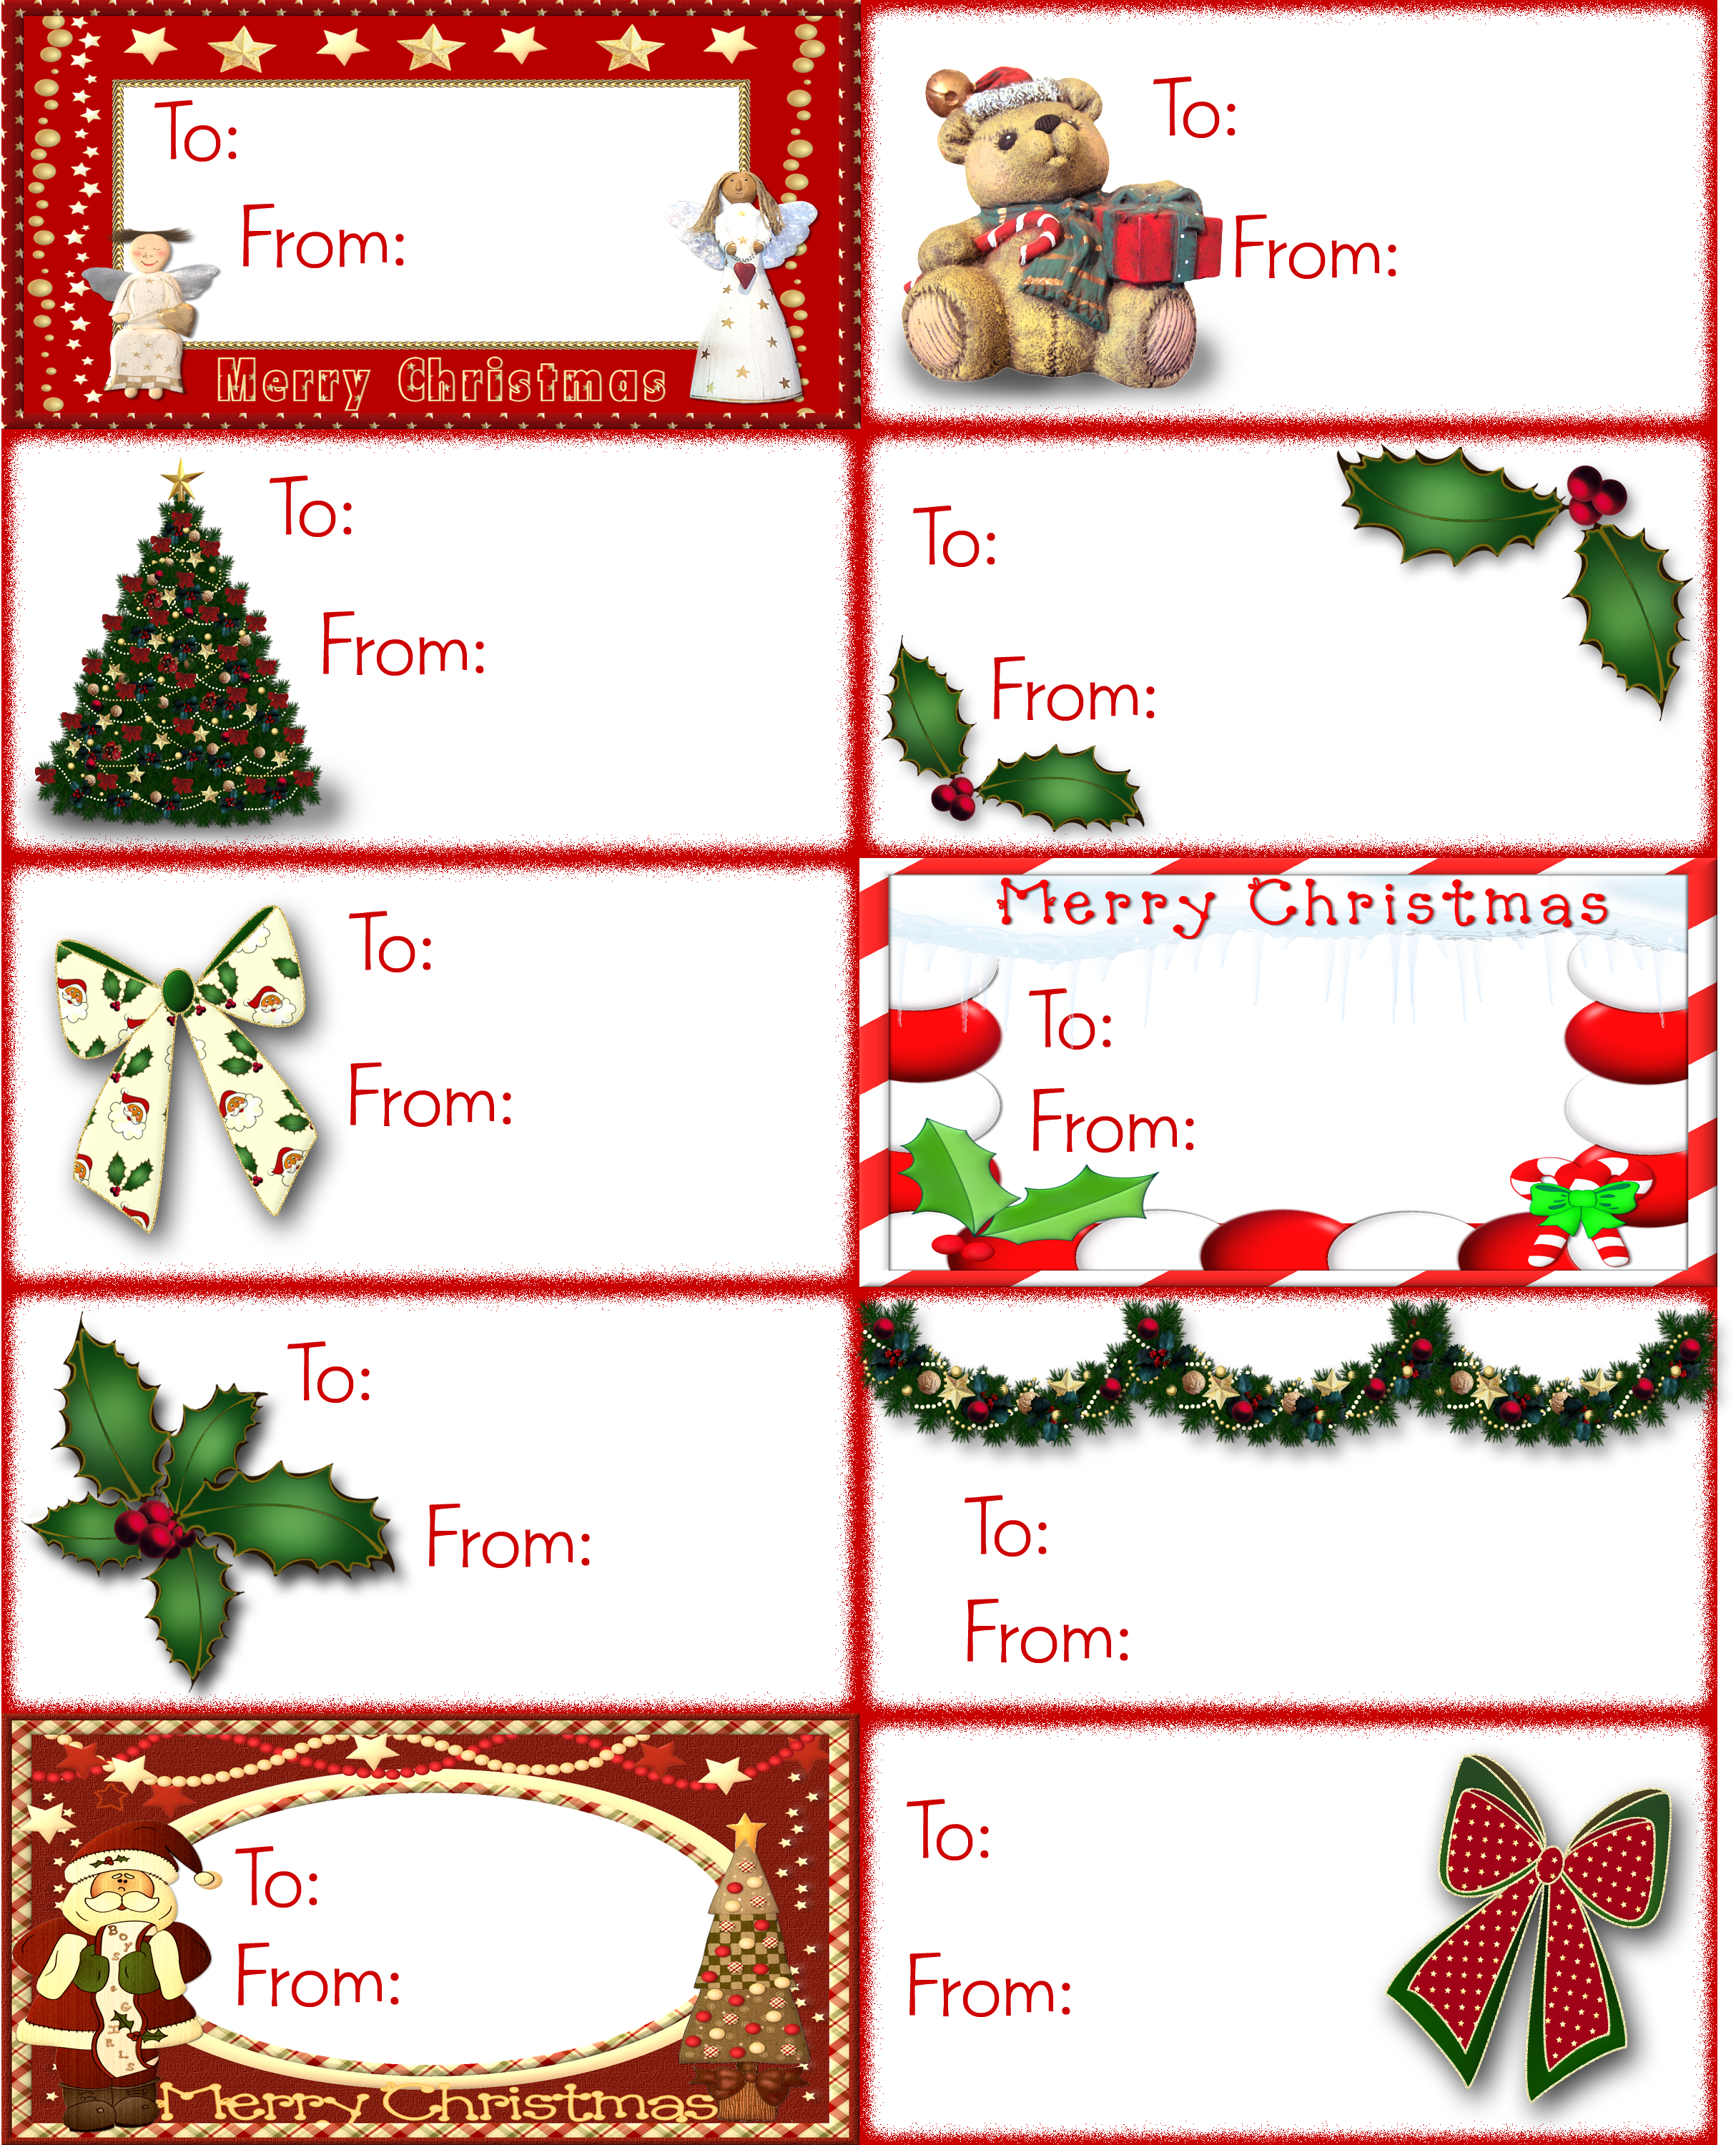 Find Tons Of Free Clip Art Images For Valentine's Day | Tags | Free - Free Printable Gift Name Tags